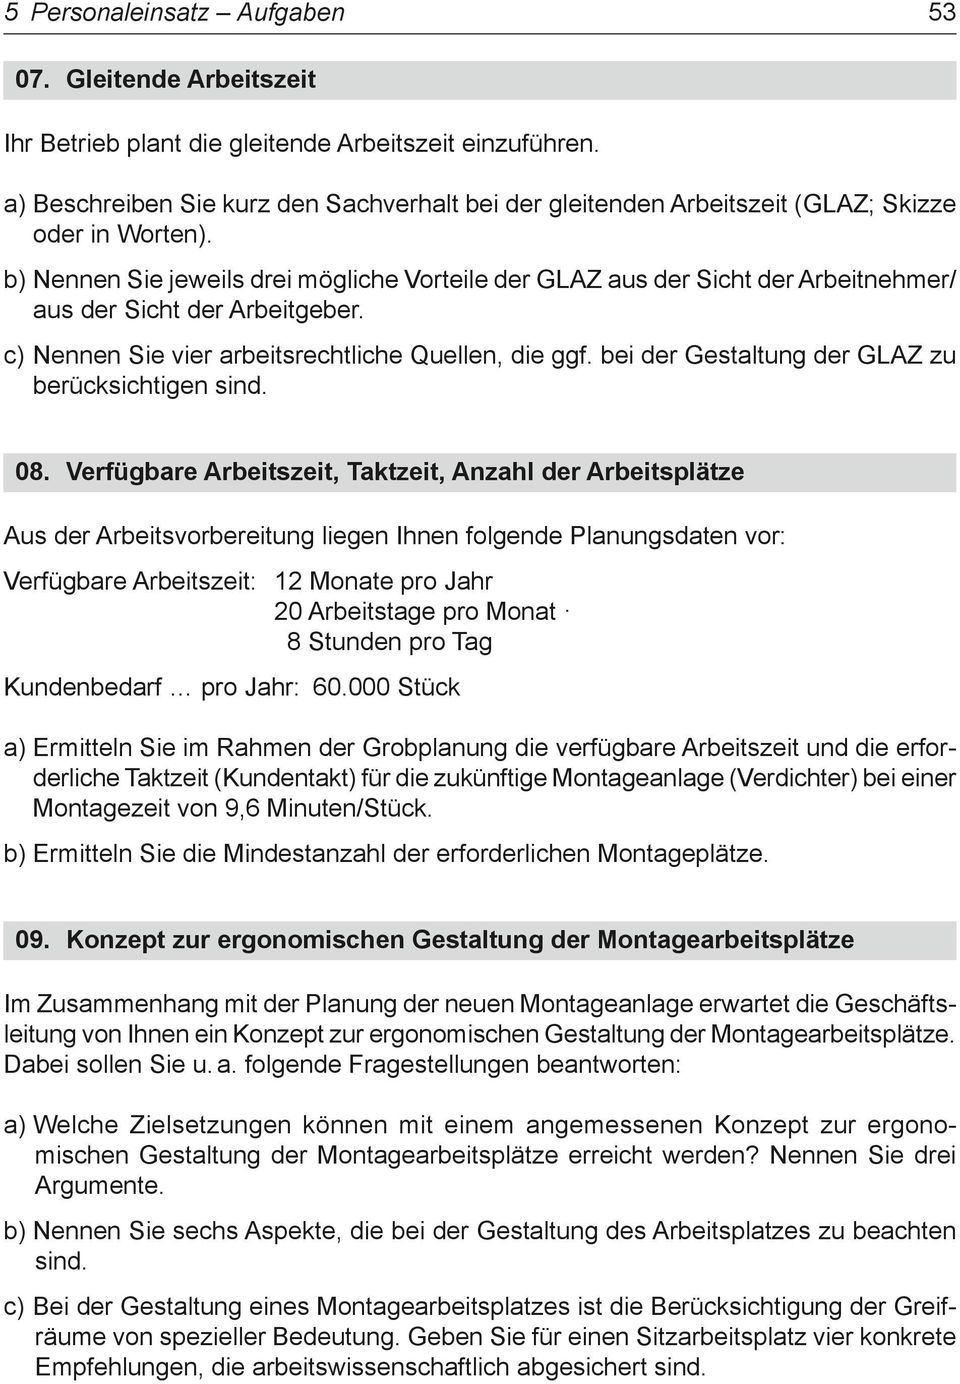 Charmant Personalwesen Account Manager Lebenslauf Beispiel Galerie ...